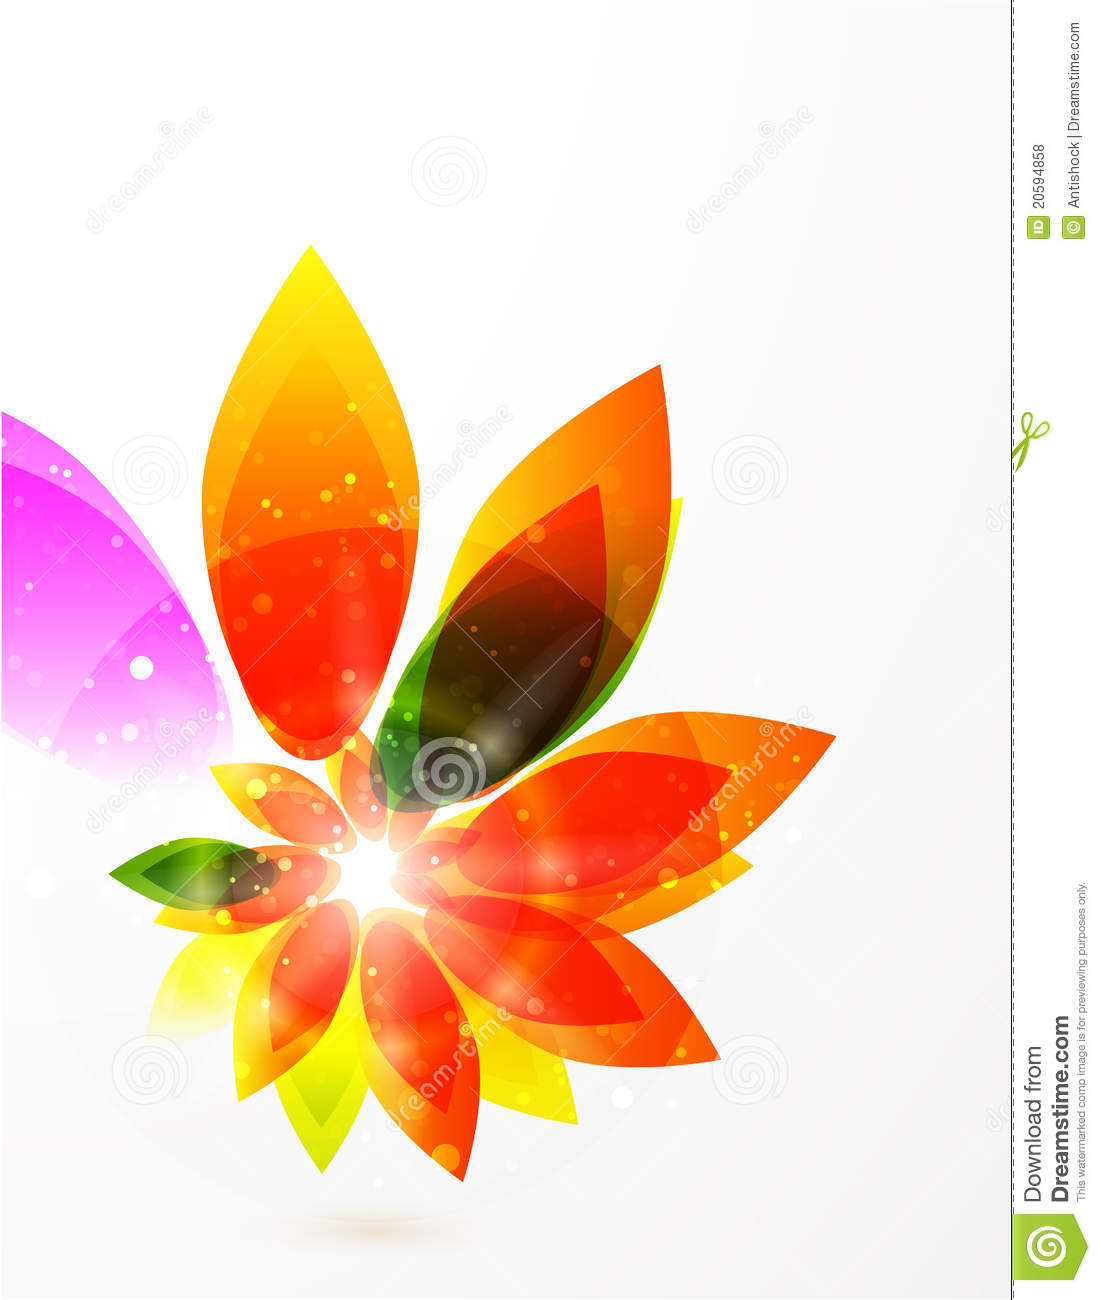 Abstract Floral Backgrounds For Your Design abstract flower background